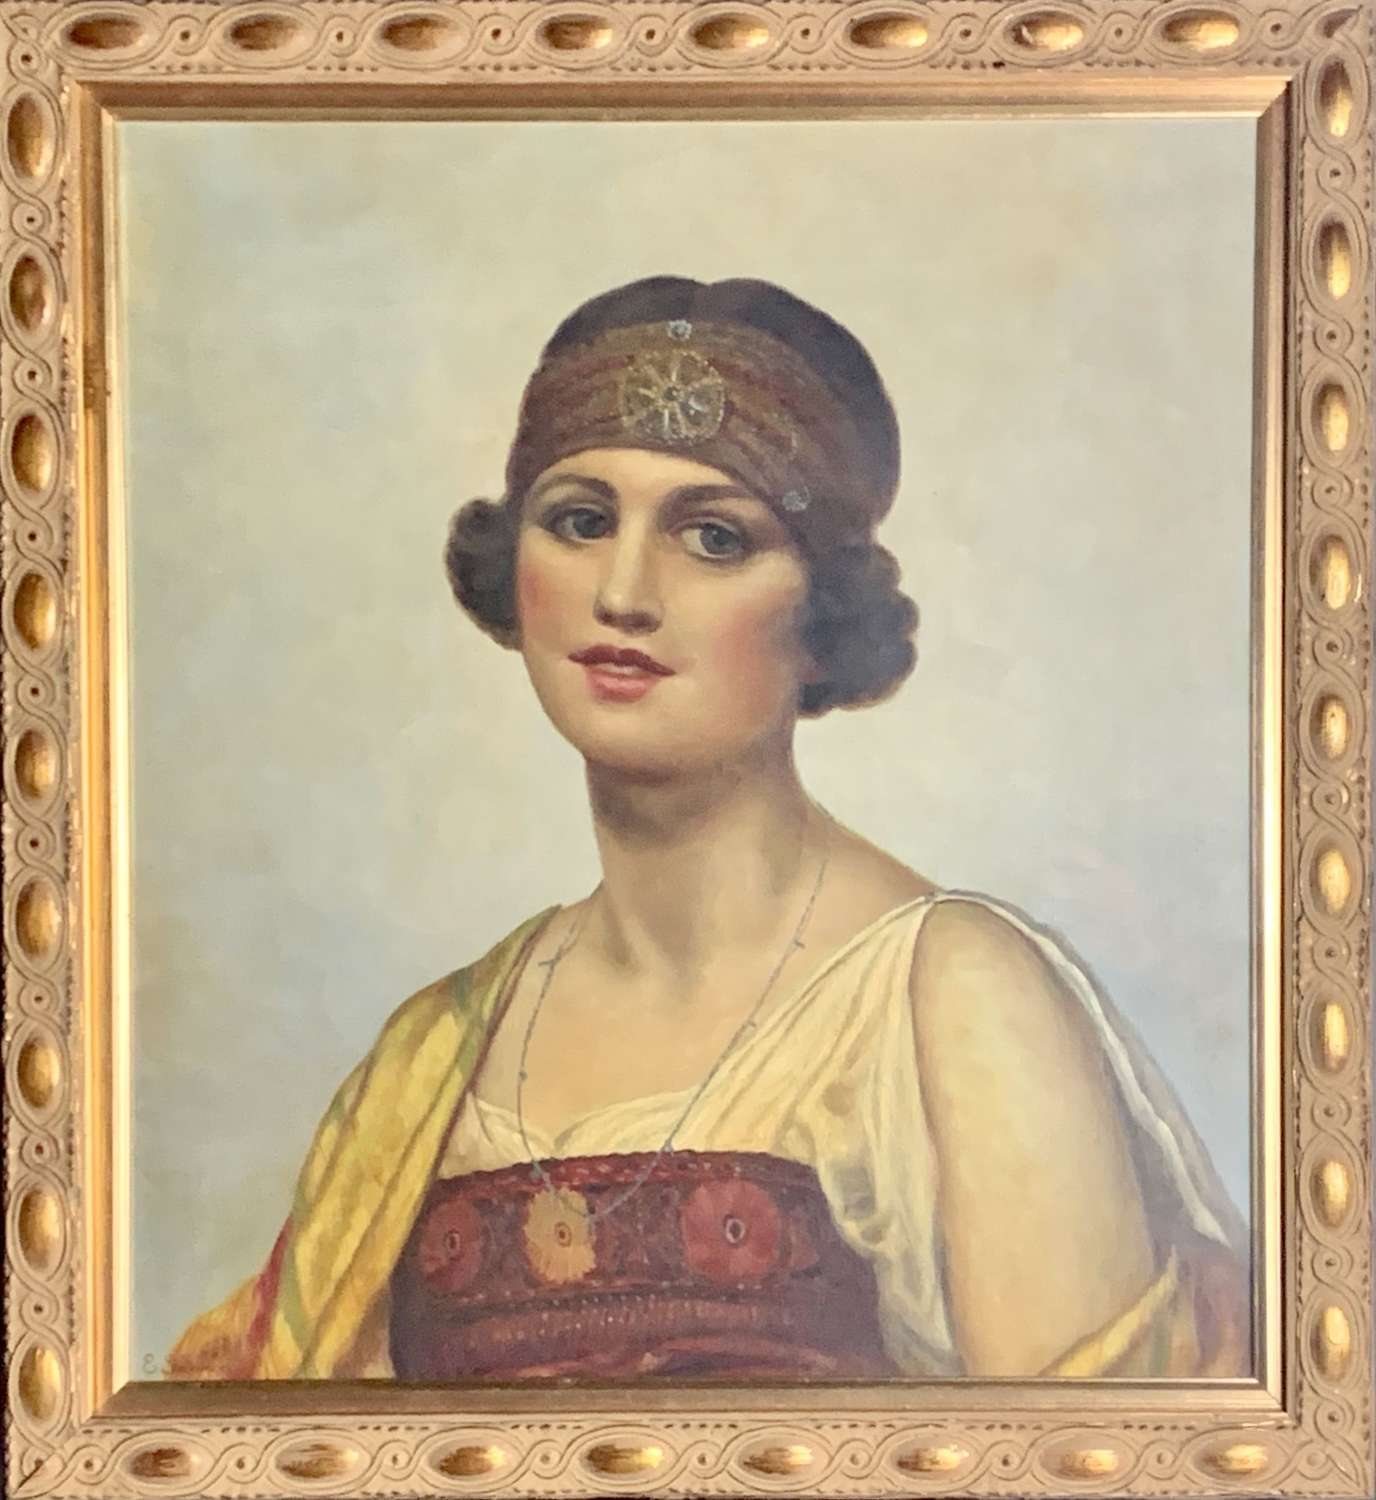 Portrait of a Girl in Eastern Inspired Costume, Oil on Canvas